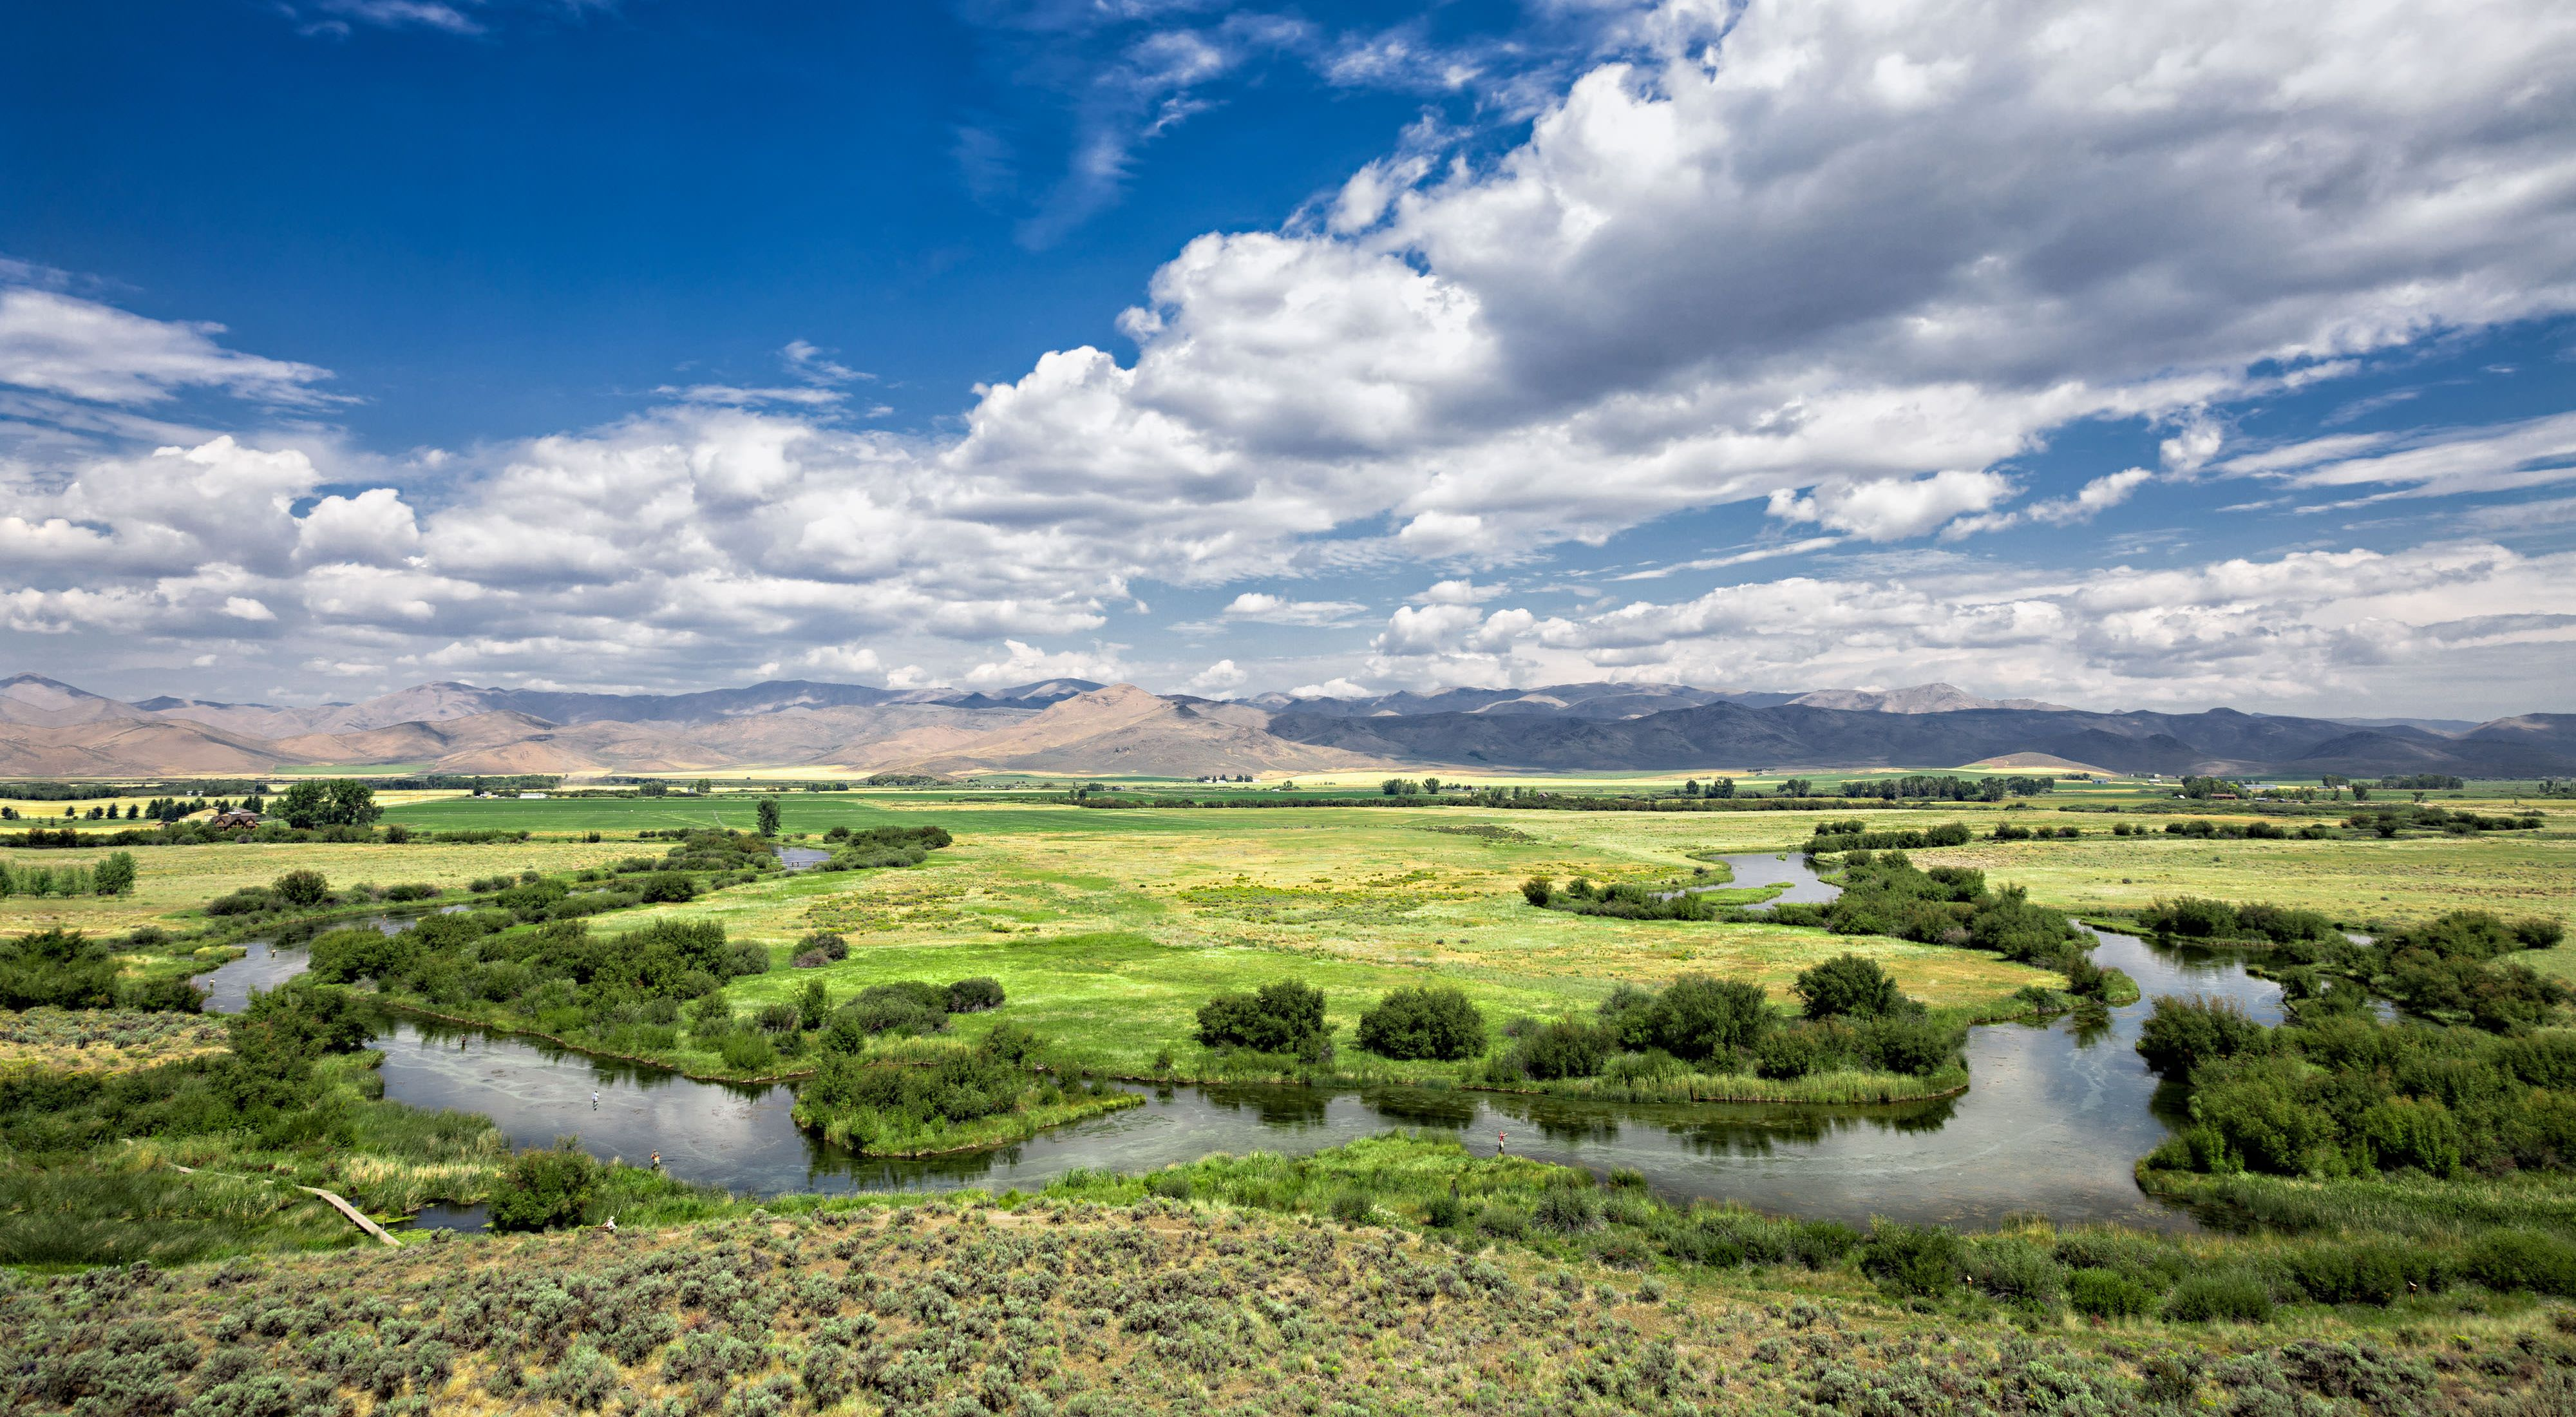 Silver Creek meanders through fields with mountains in the distance.